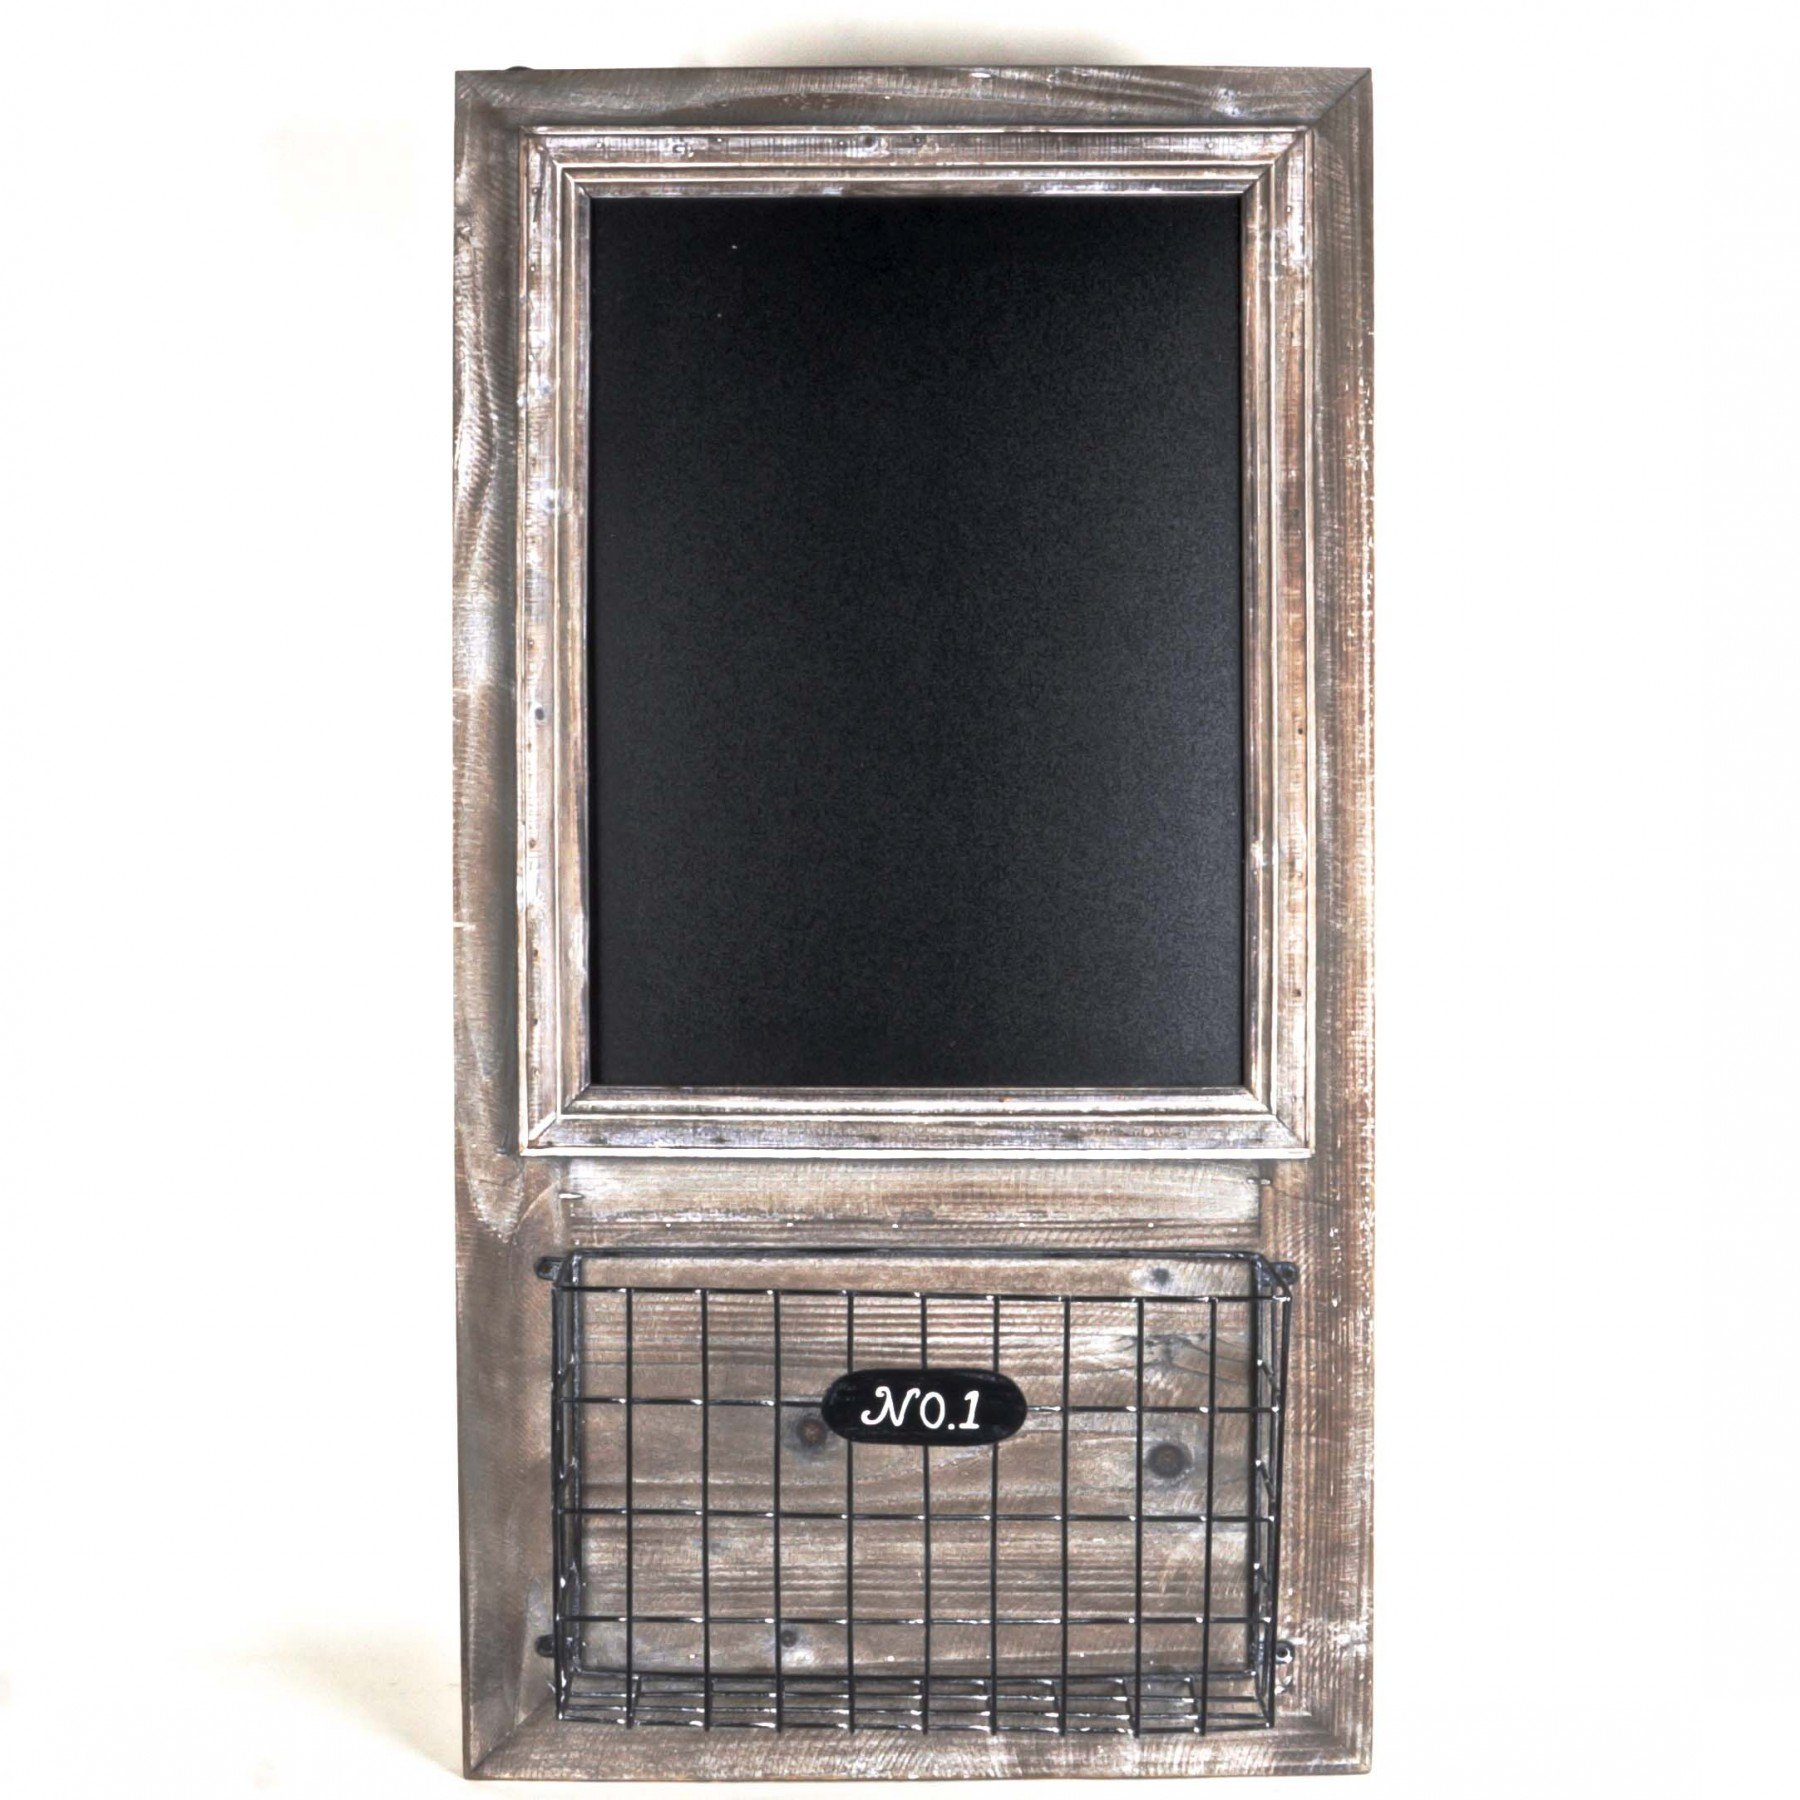 Vintage Style Wall Mounted Blackboard Shelf with Letter Rack -- Washed Grey